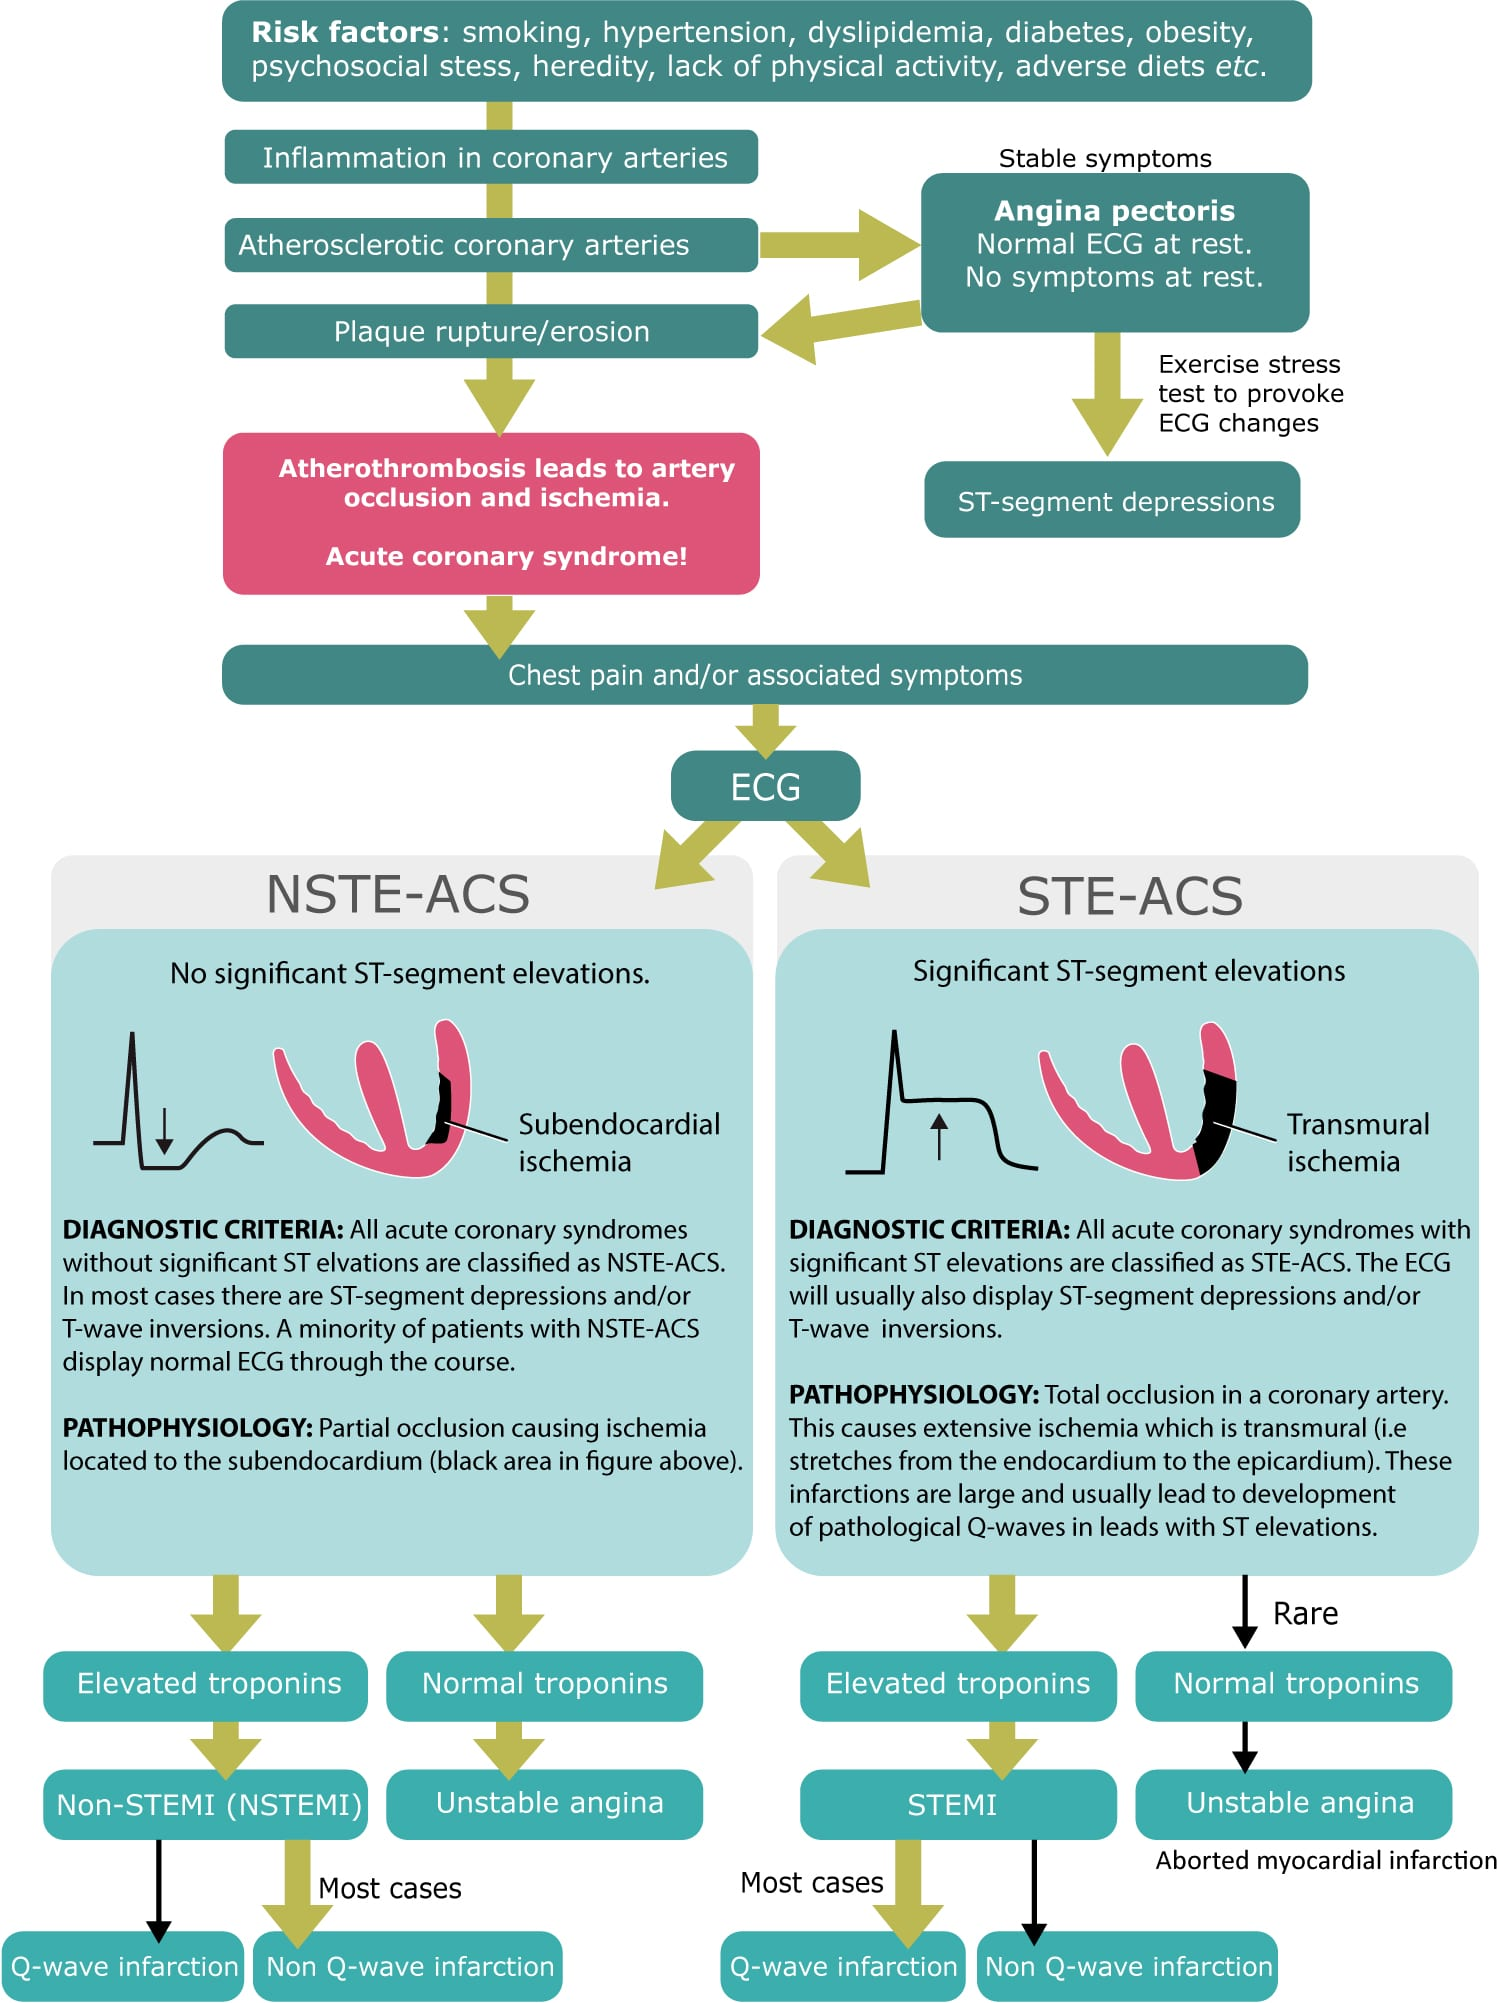 Figure 1. Classification of acute coronary syndromes into STE-ACS (STEMI, ST Elevation Myocardial Infarction) and NSTE-ACS. The latter includes NSTEMI (Non-ST Elevation Myocardial Infarction) and unstable angina.